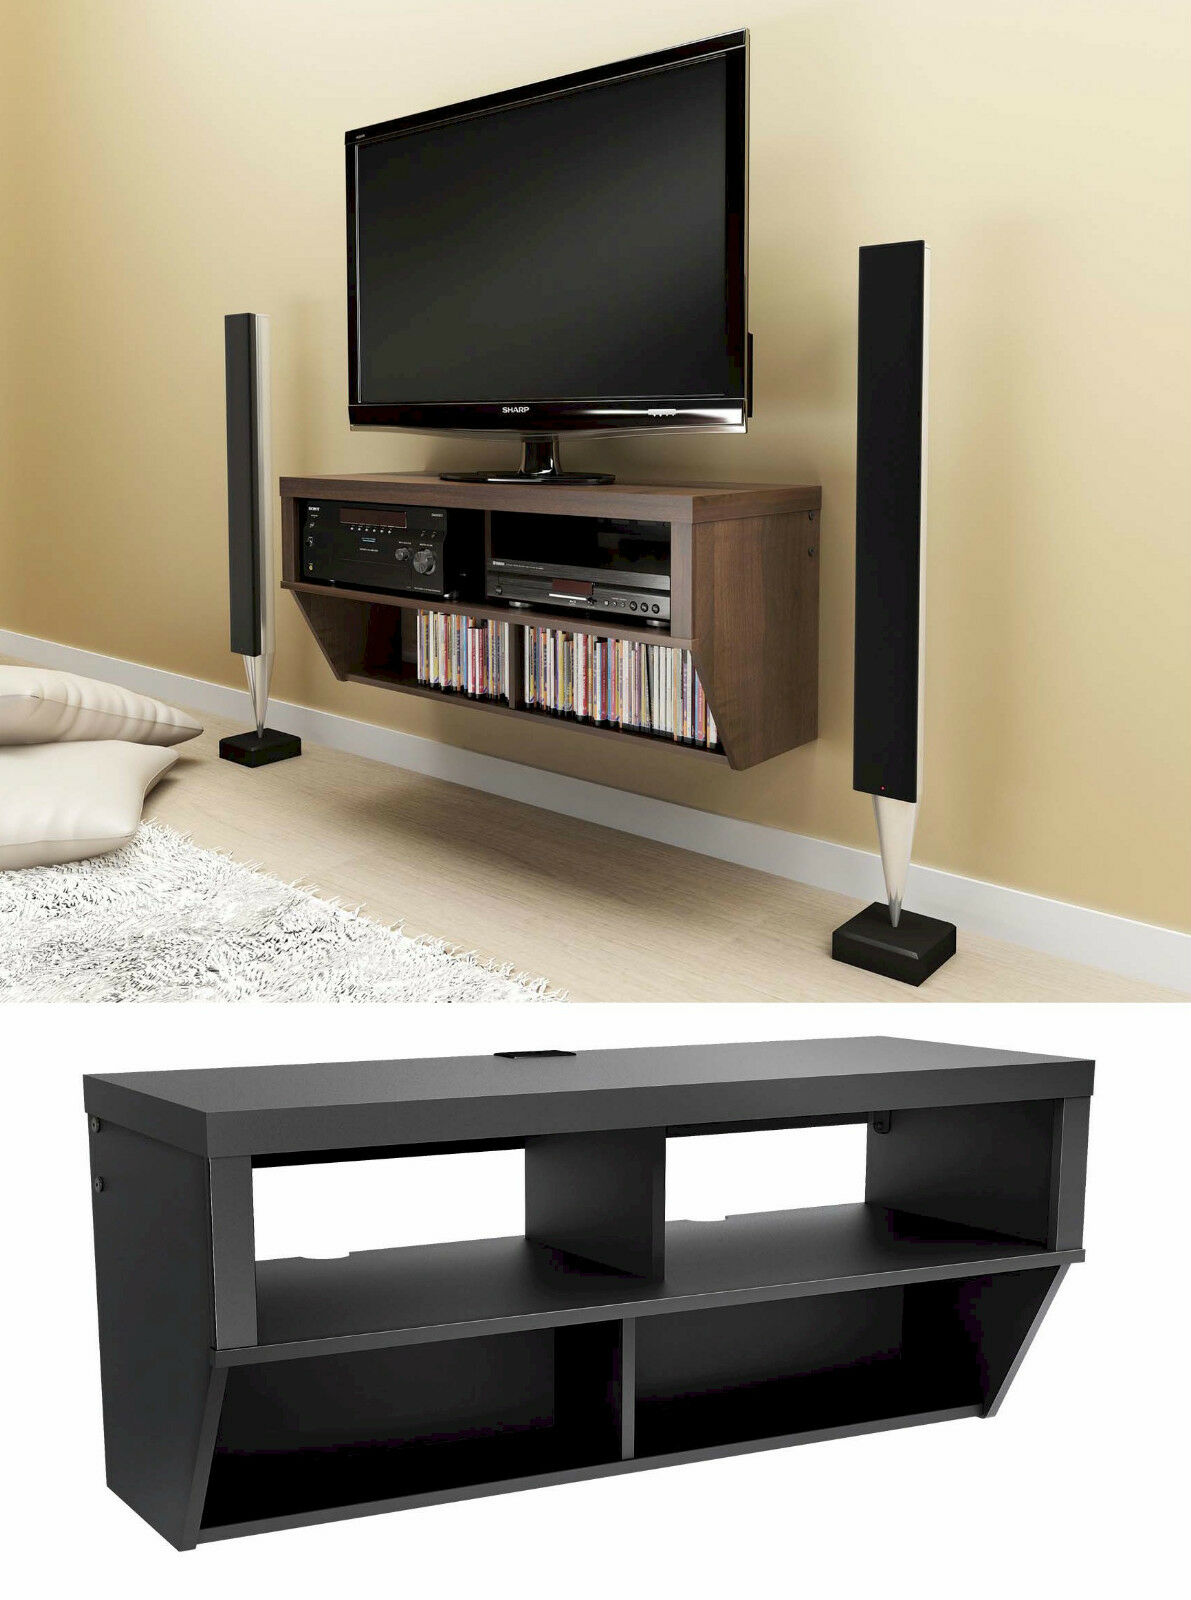 42 Quot Wall Mounted Entertainment Console Lcd Led Tv Stand W